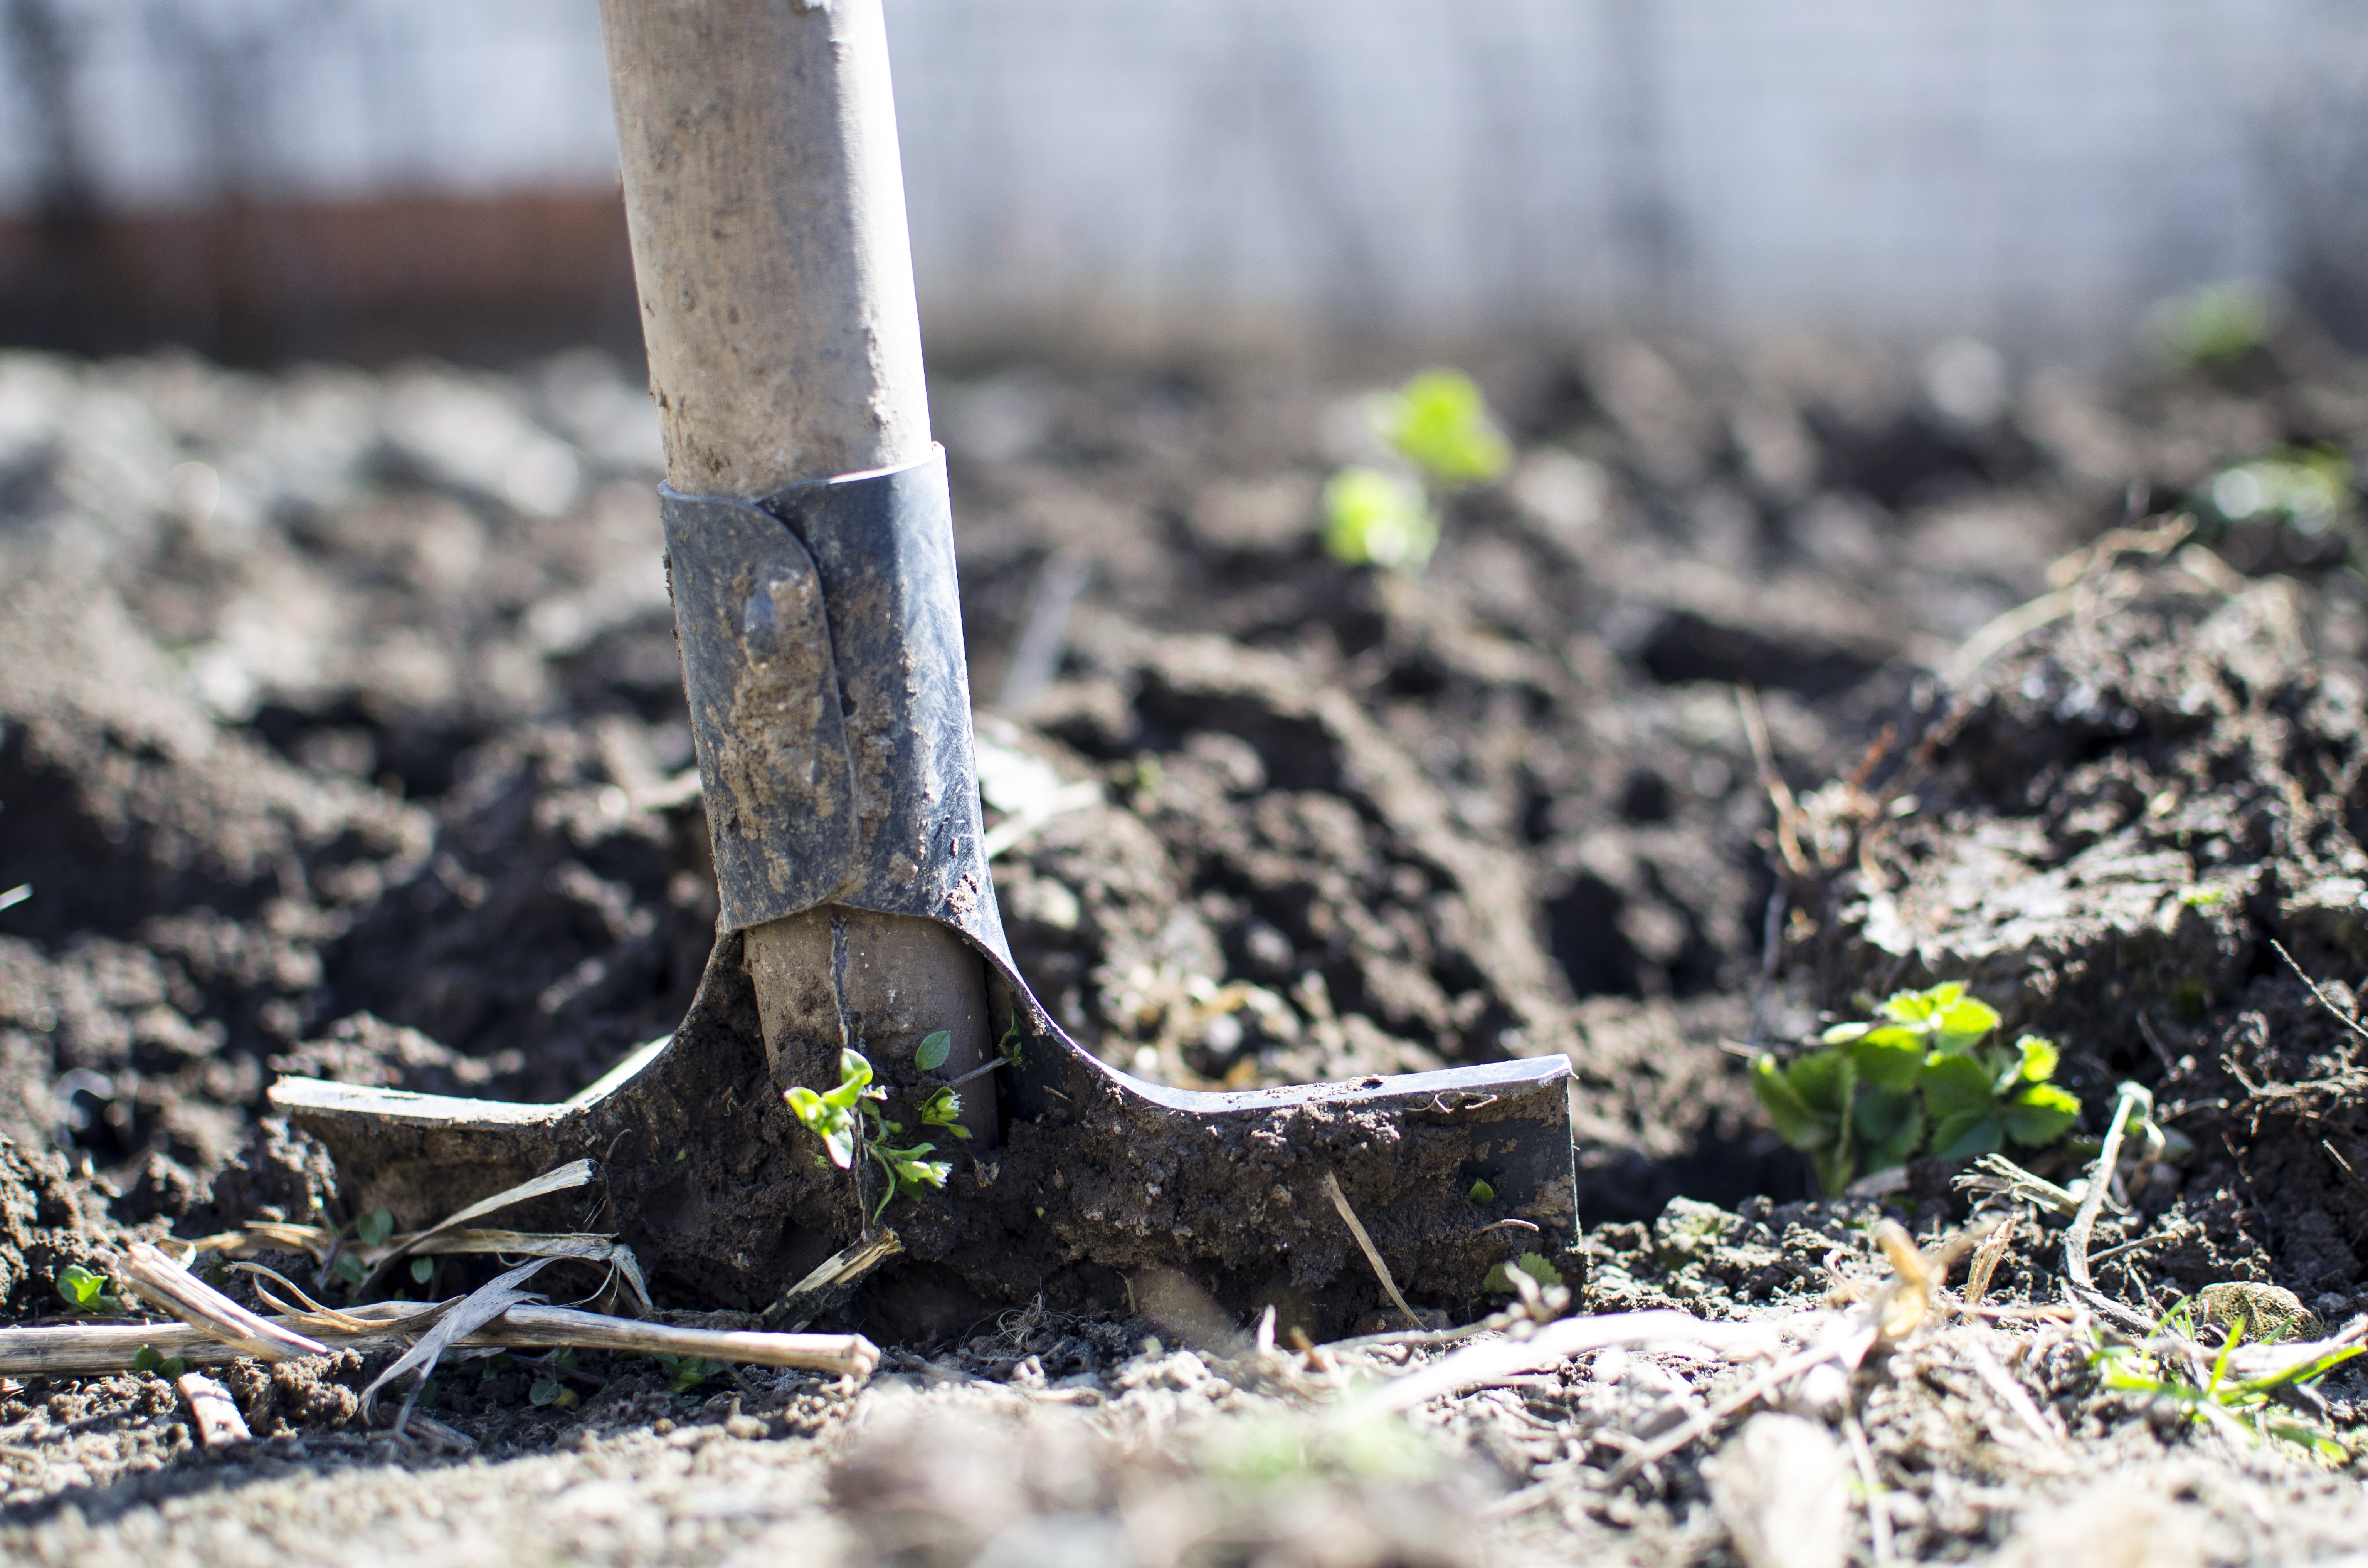 Few gardeners find loamy soil throughout their property.